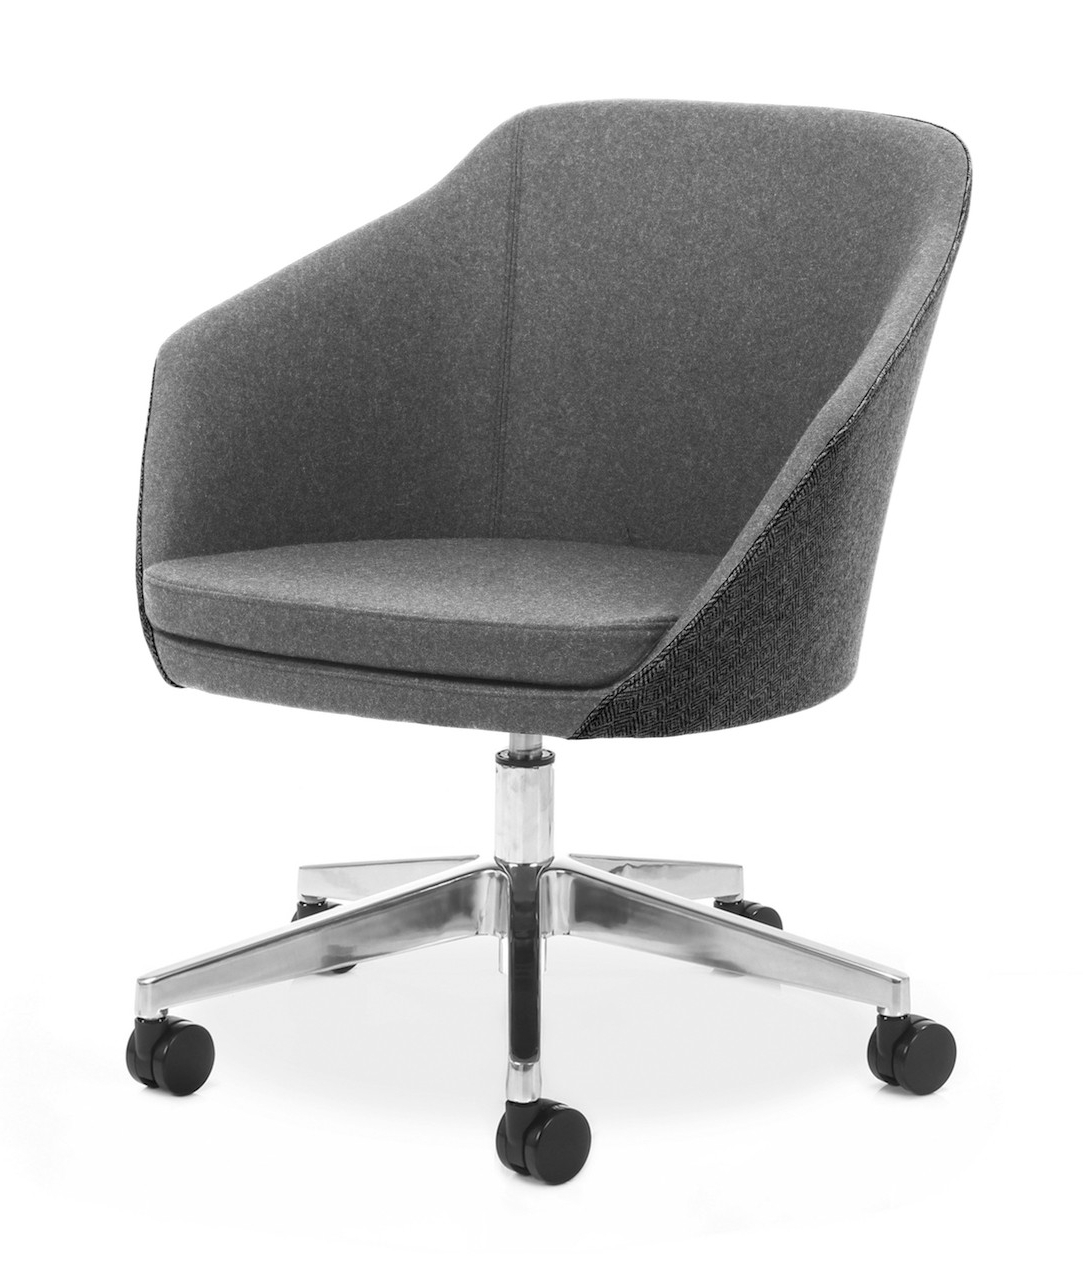 Best And Newest Chill Swivel Chairs With Metal Base For Annette: 5 Point Castor Base Office Furniture, Desk Chairs, Task (View 4 of 20)